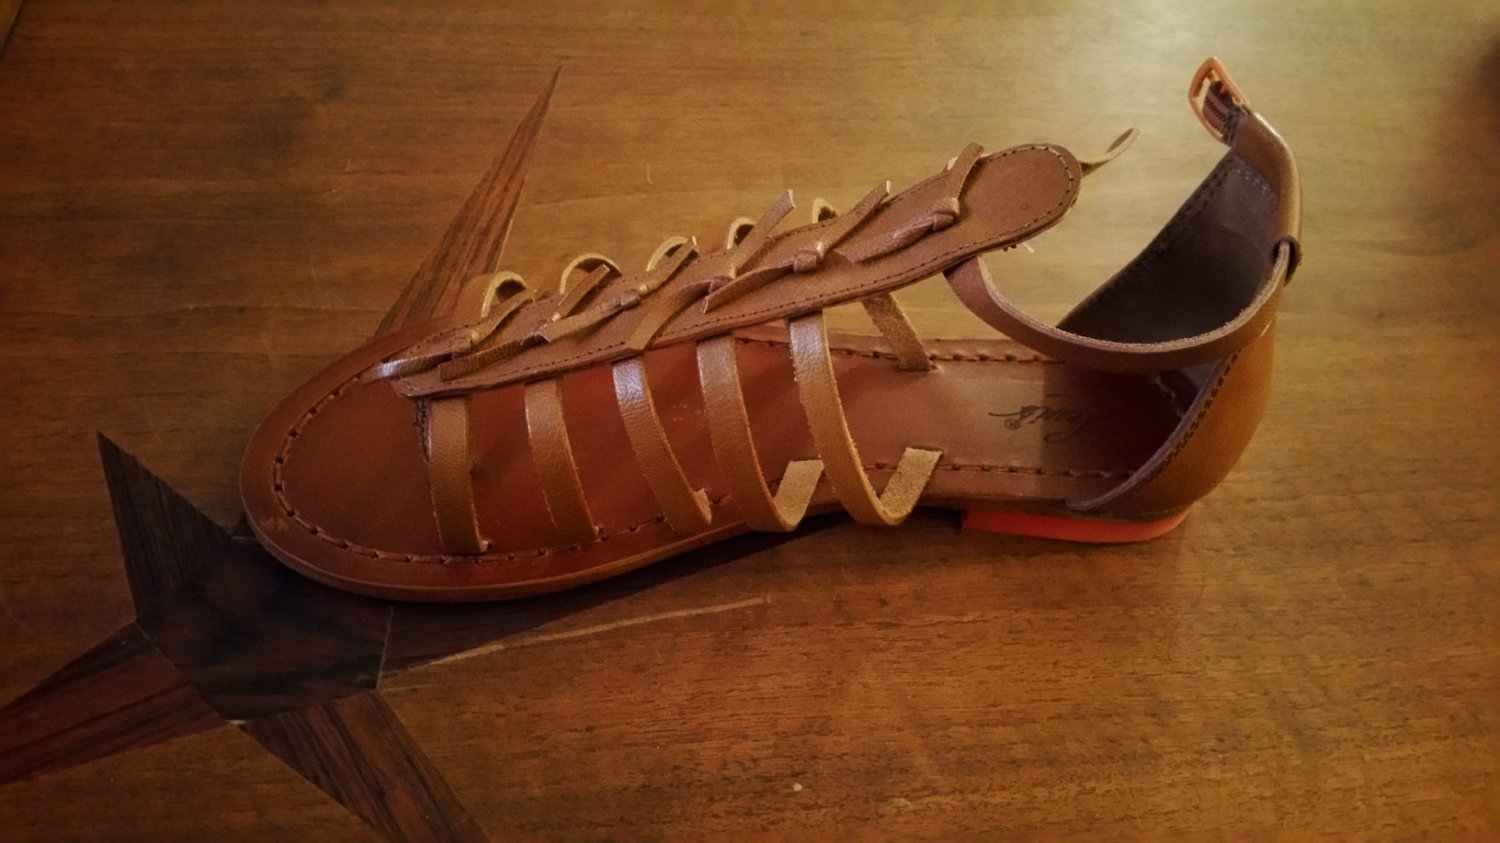 Levi's Crafted Leather Sandals 6.5